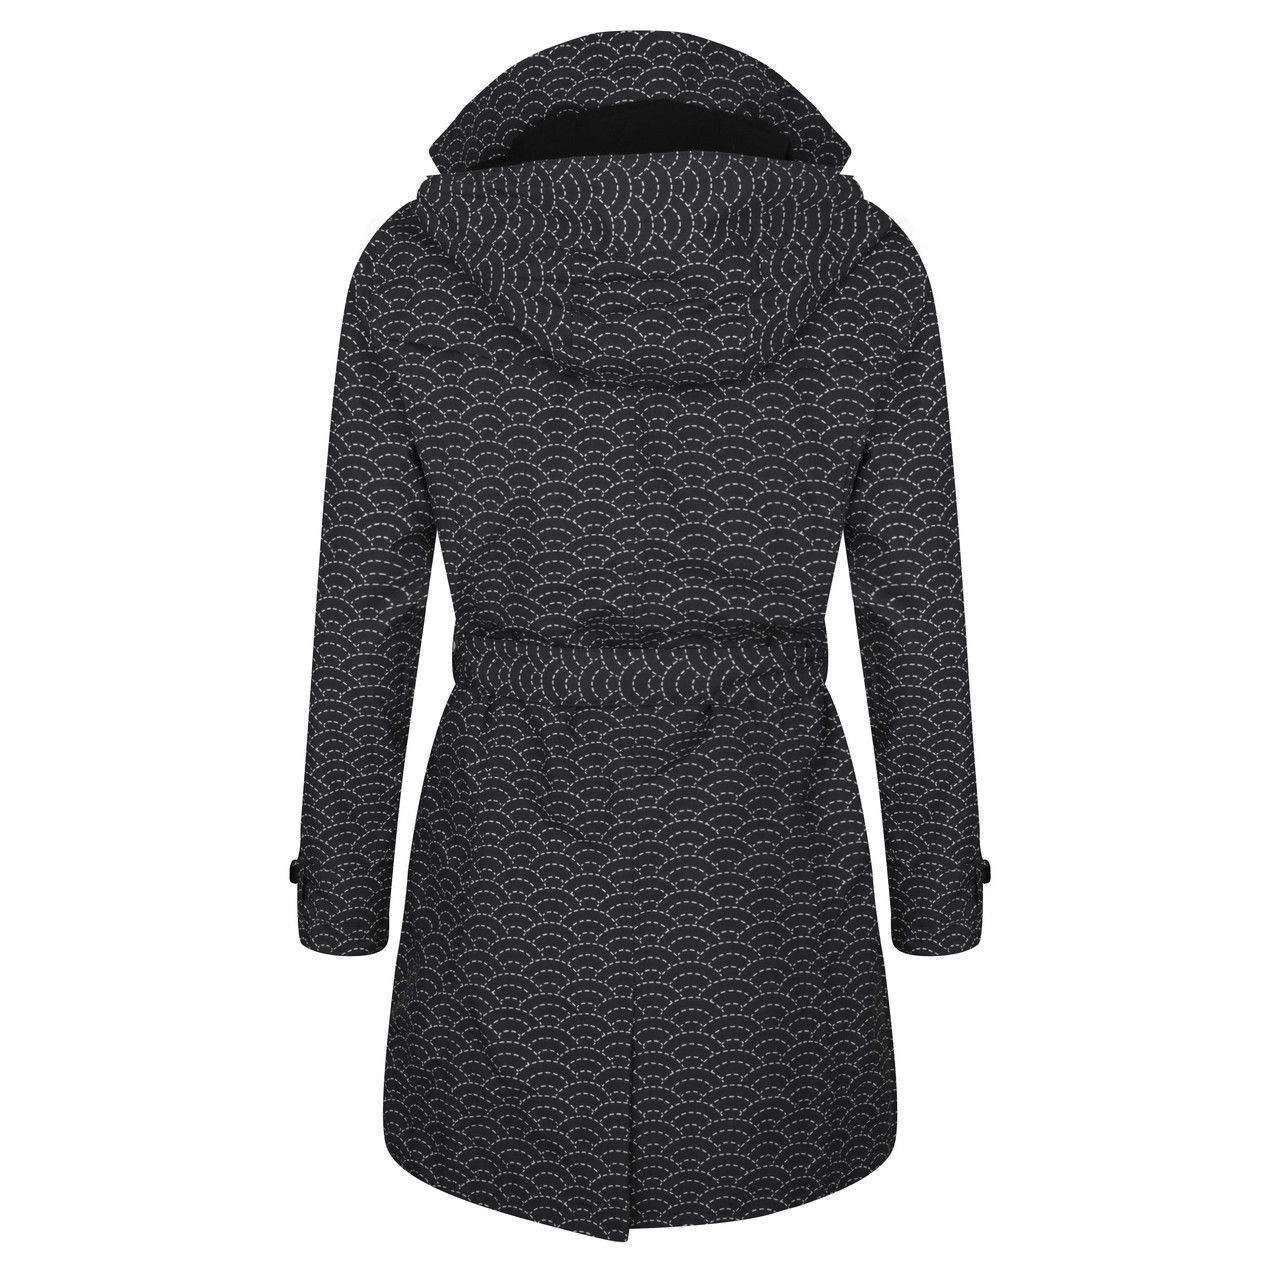 Happy Rainy Days Trench Coat, Black with White Pattern, Color: Black/White Pattern, Size: L image 2